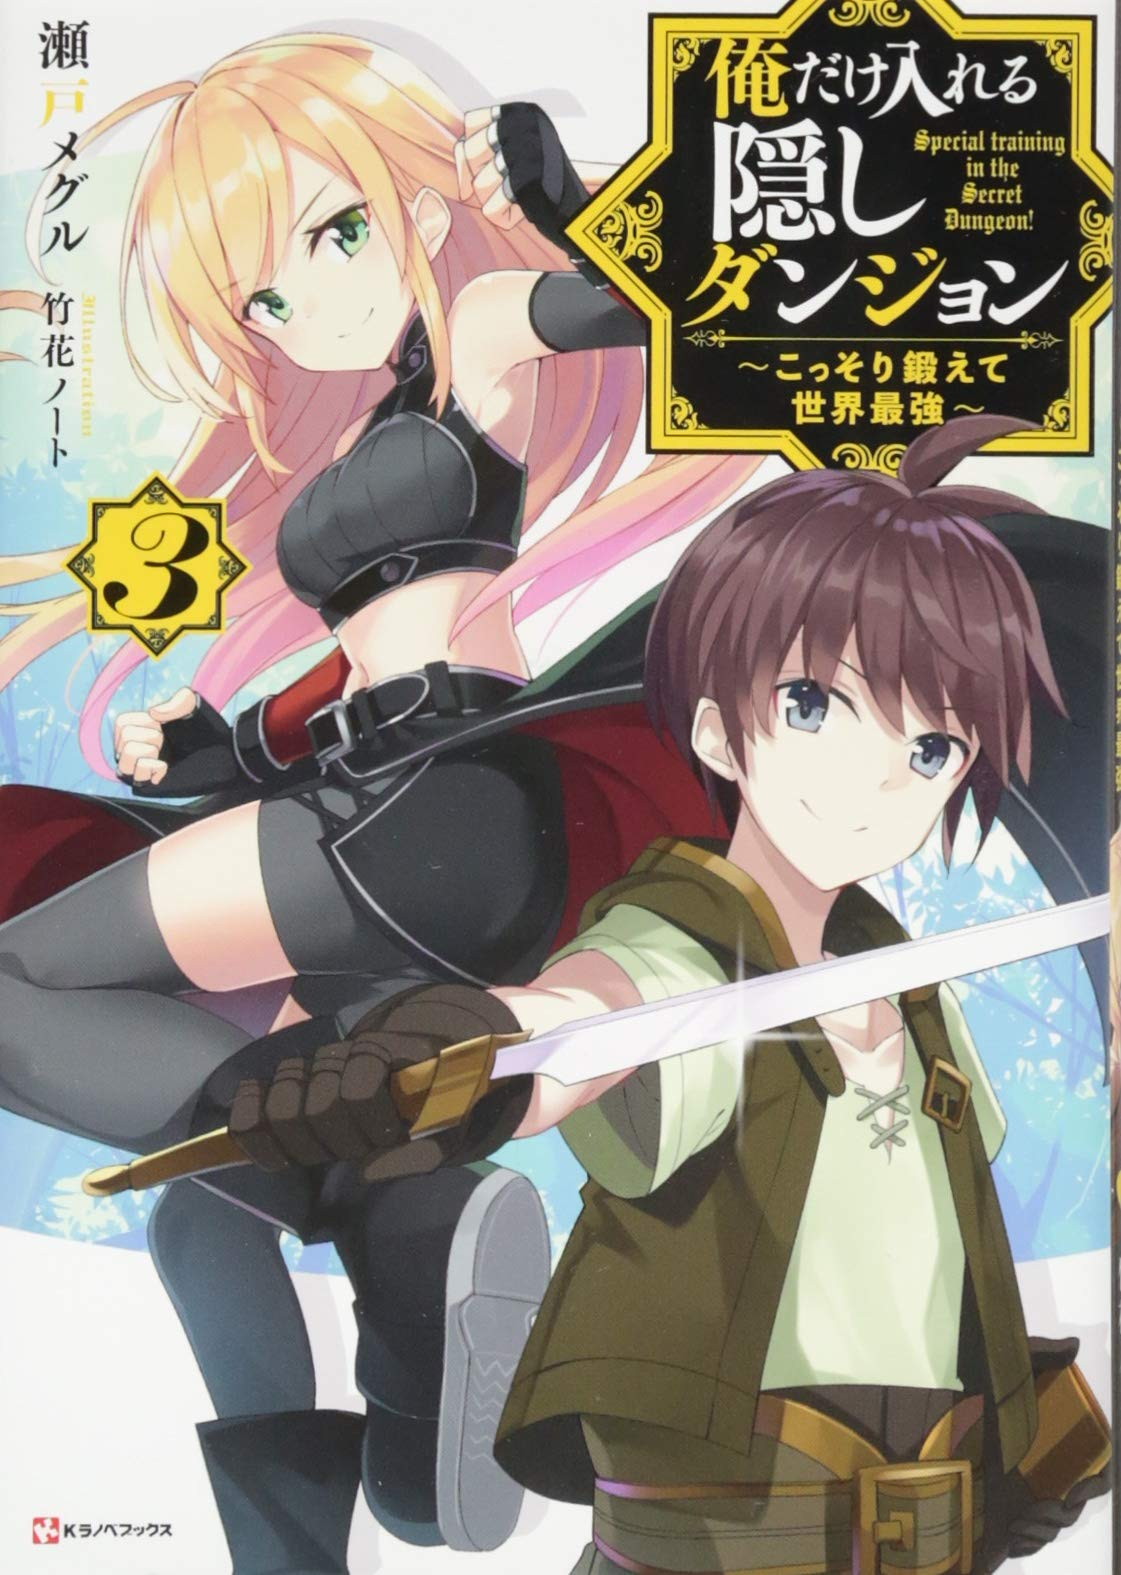 Ore dake Haireru Kakushi Dungeon Volume 3